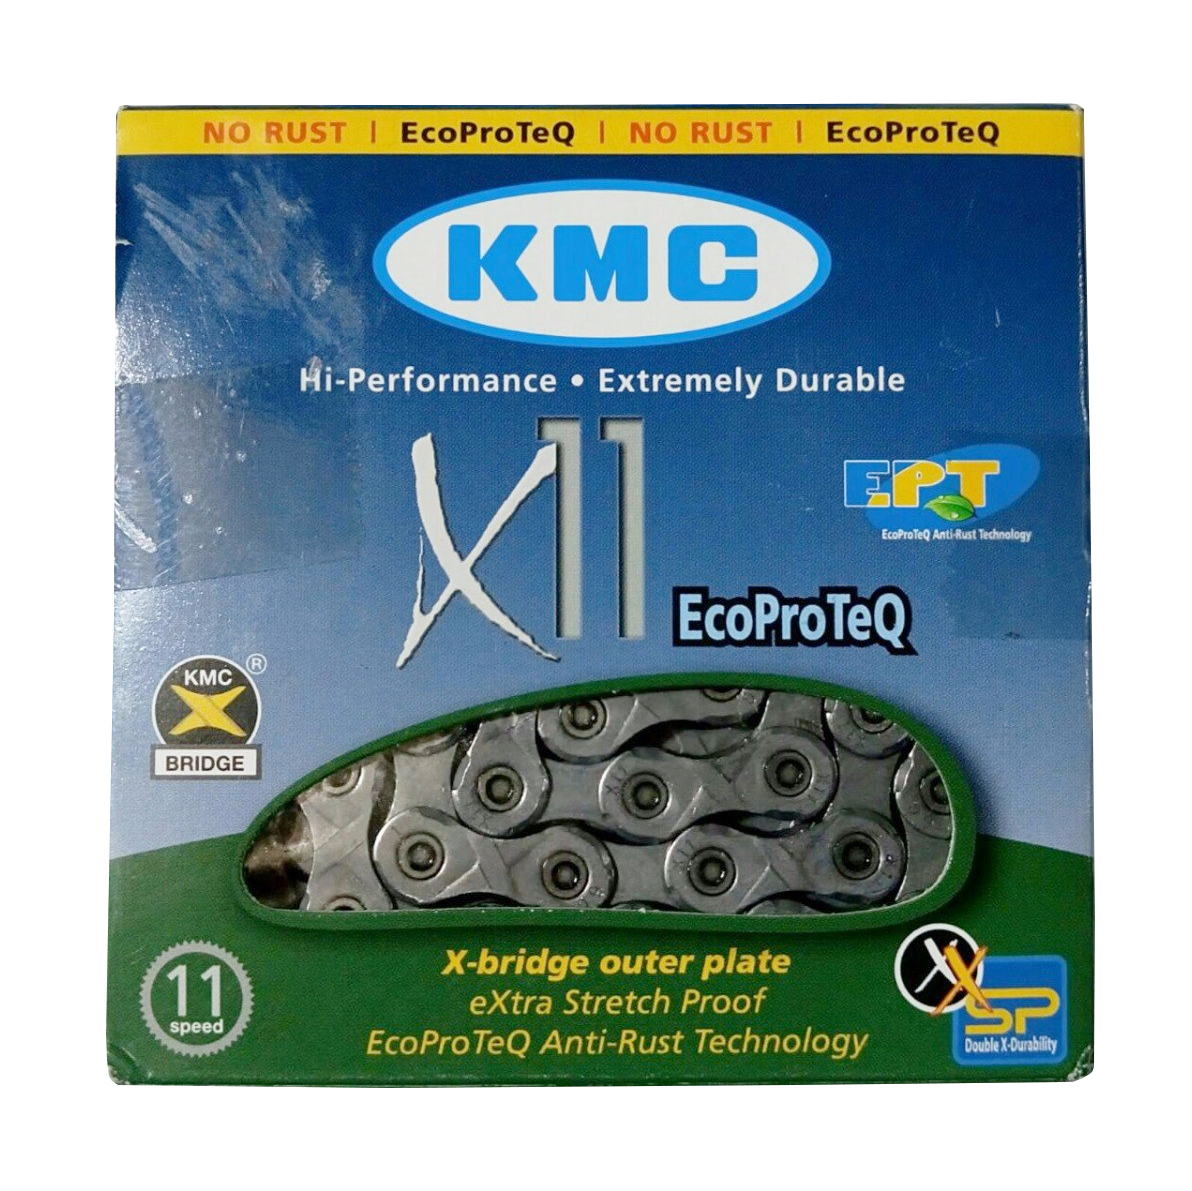 Two KMC X9 9-Speed Stretch-Proof Bike Chains X9.93 for Road CX MTB Pack 2